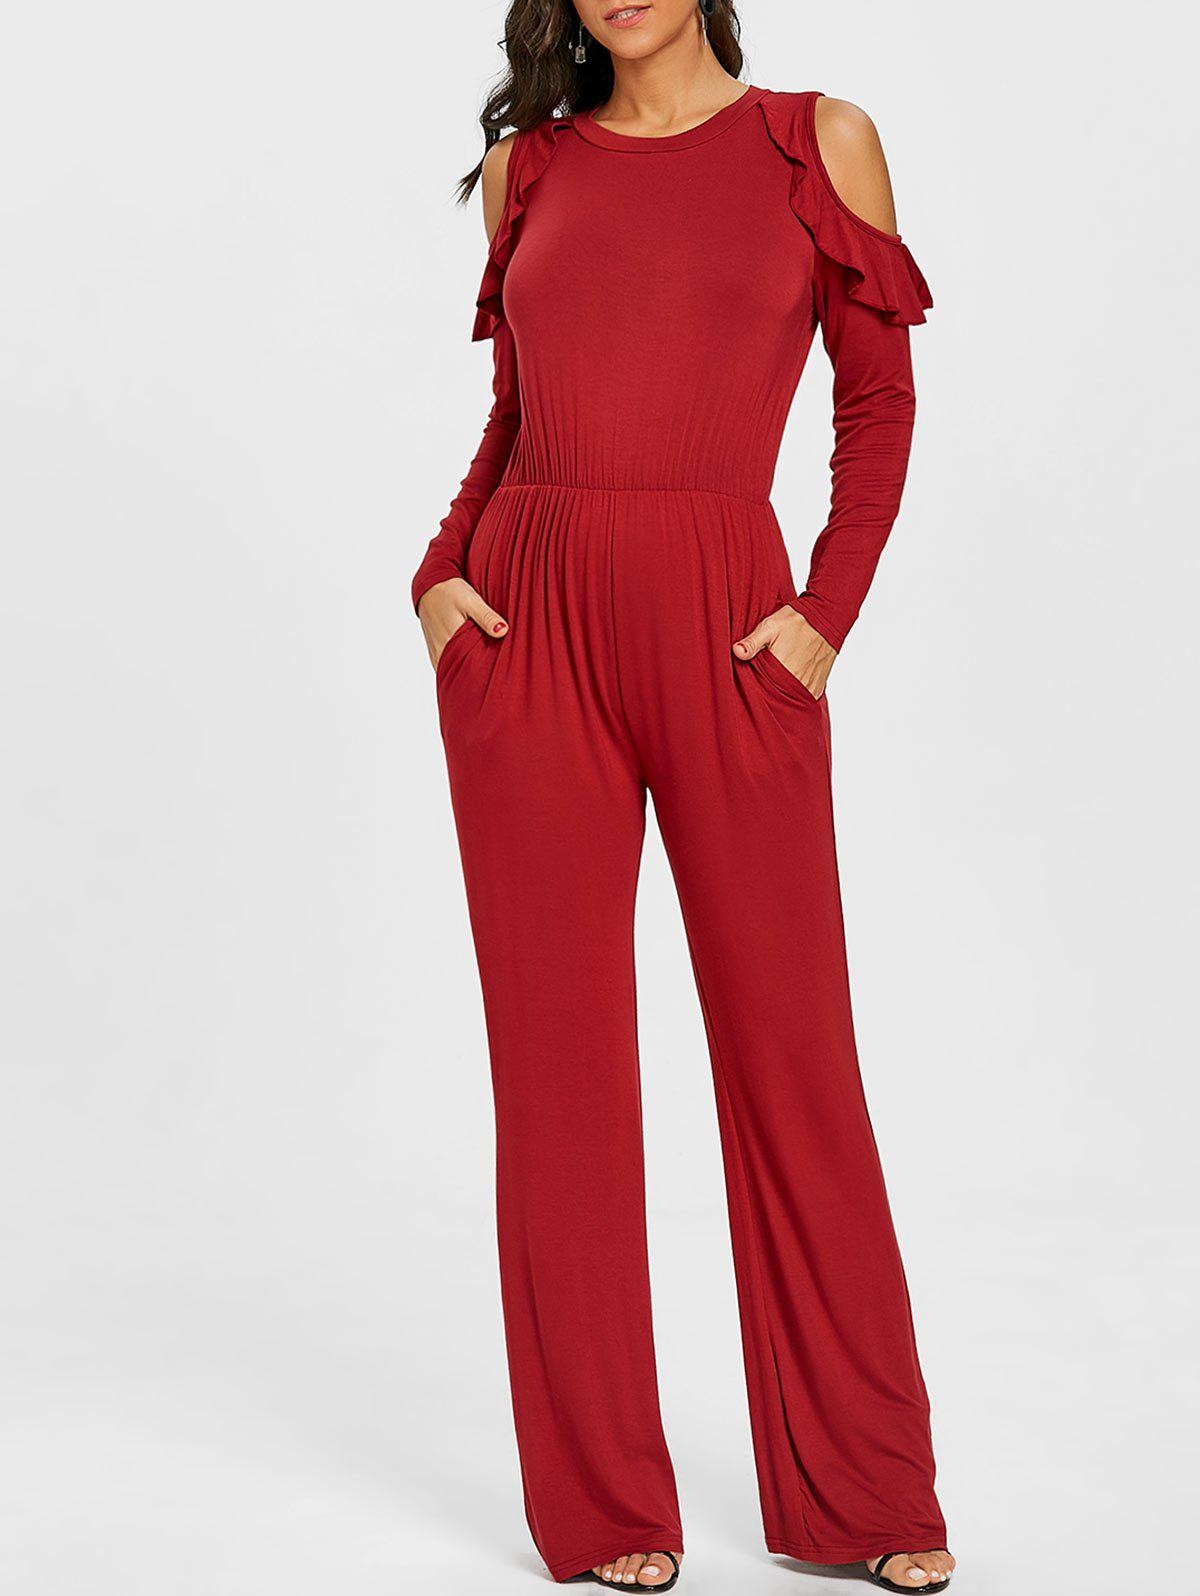 Image result for Wide Leg Cold Shoulder Jumpsuit